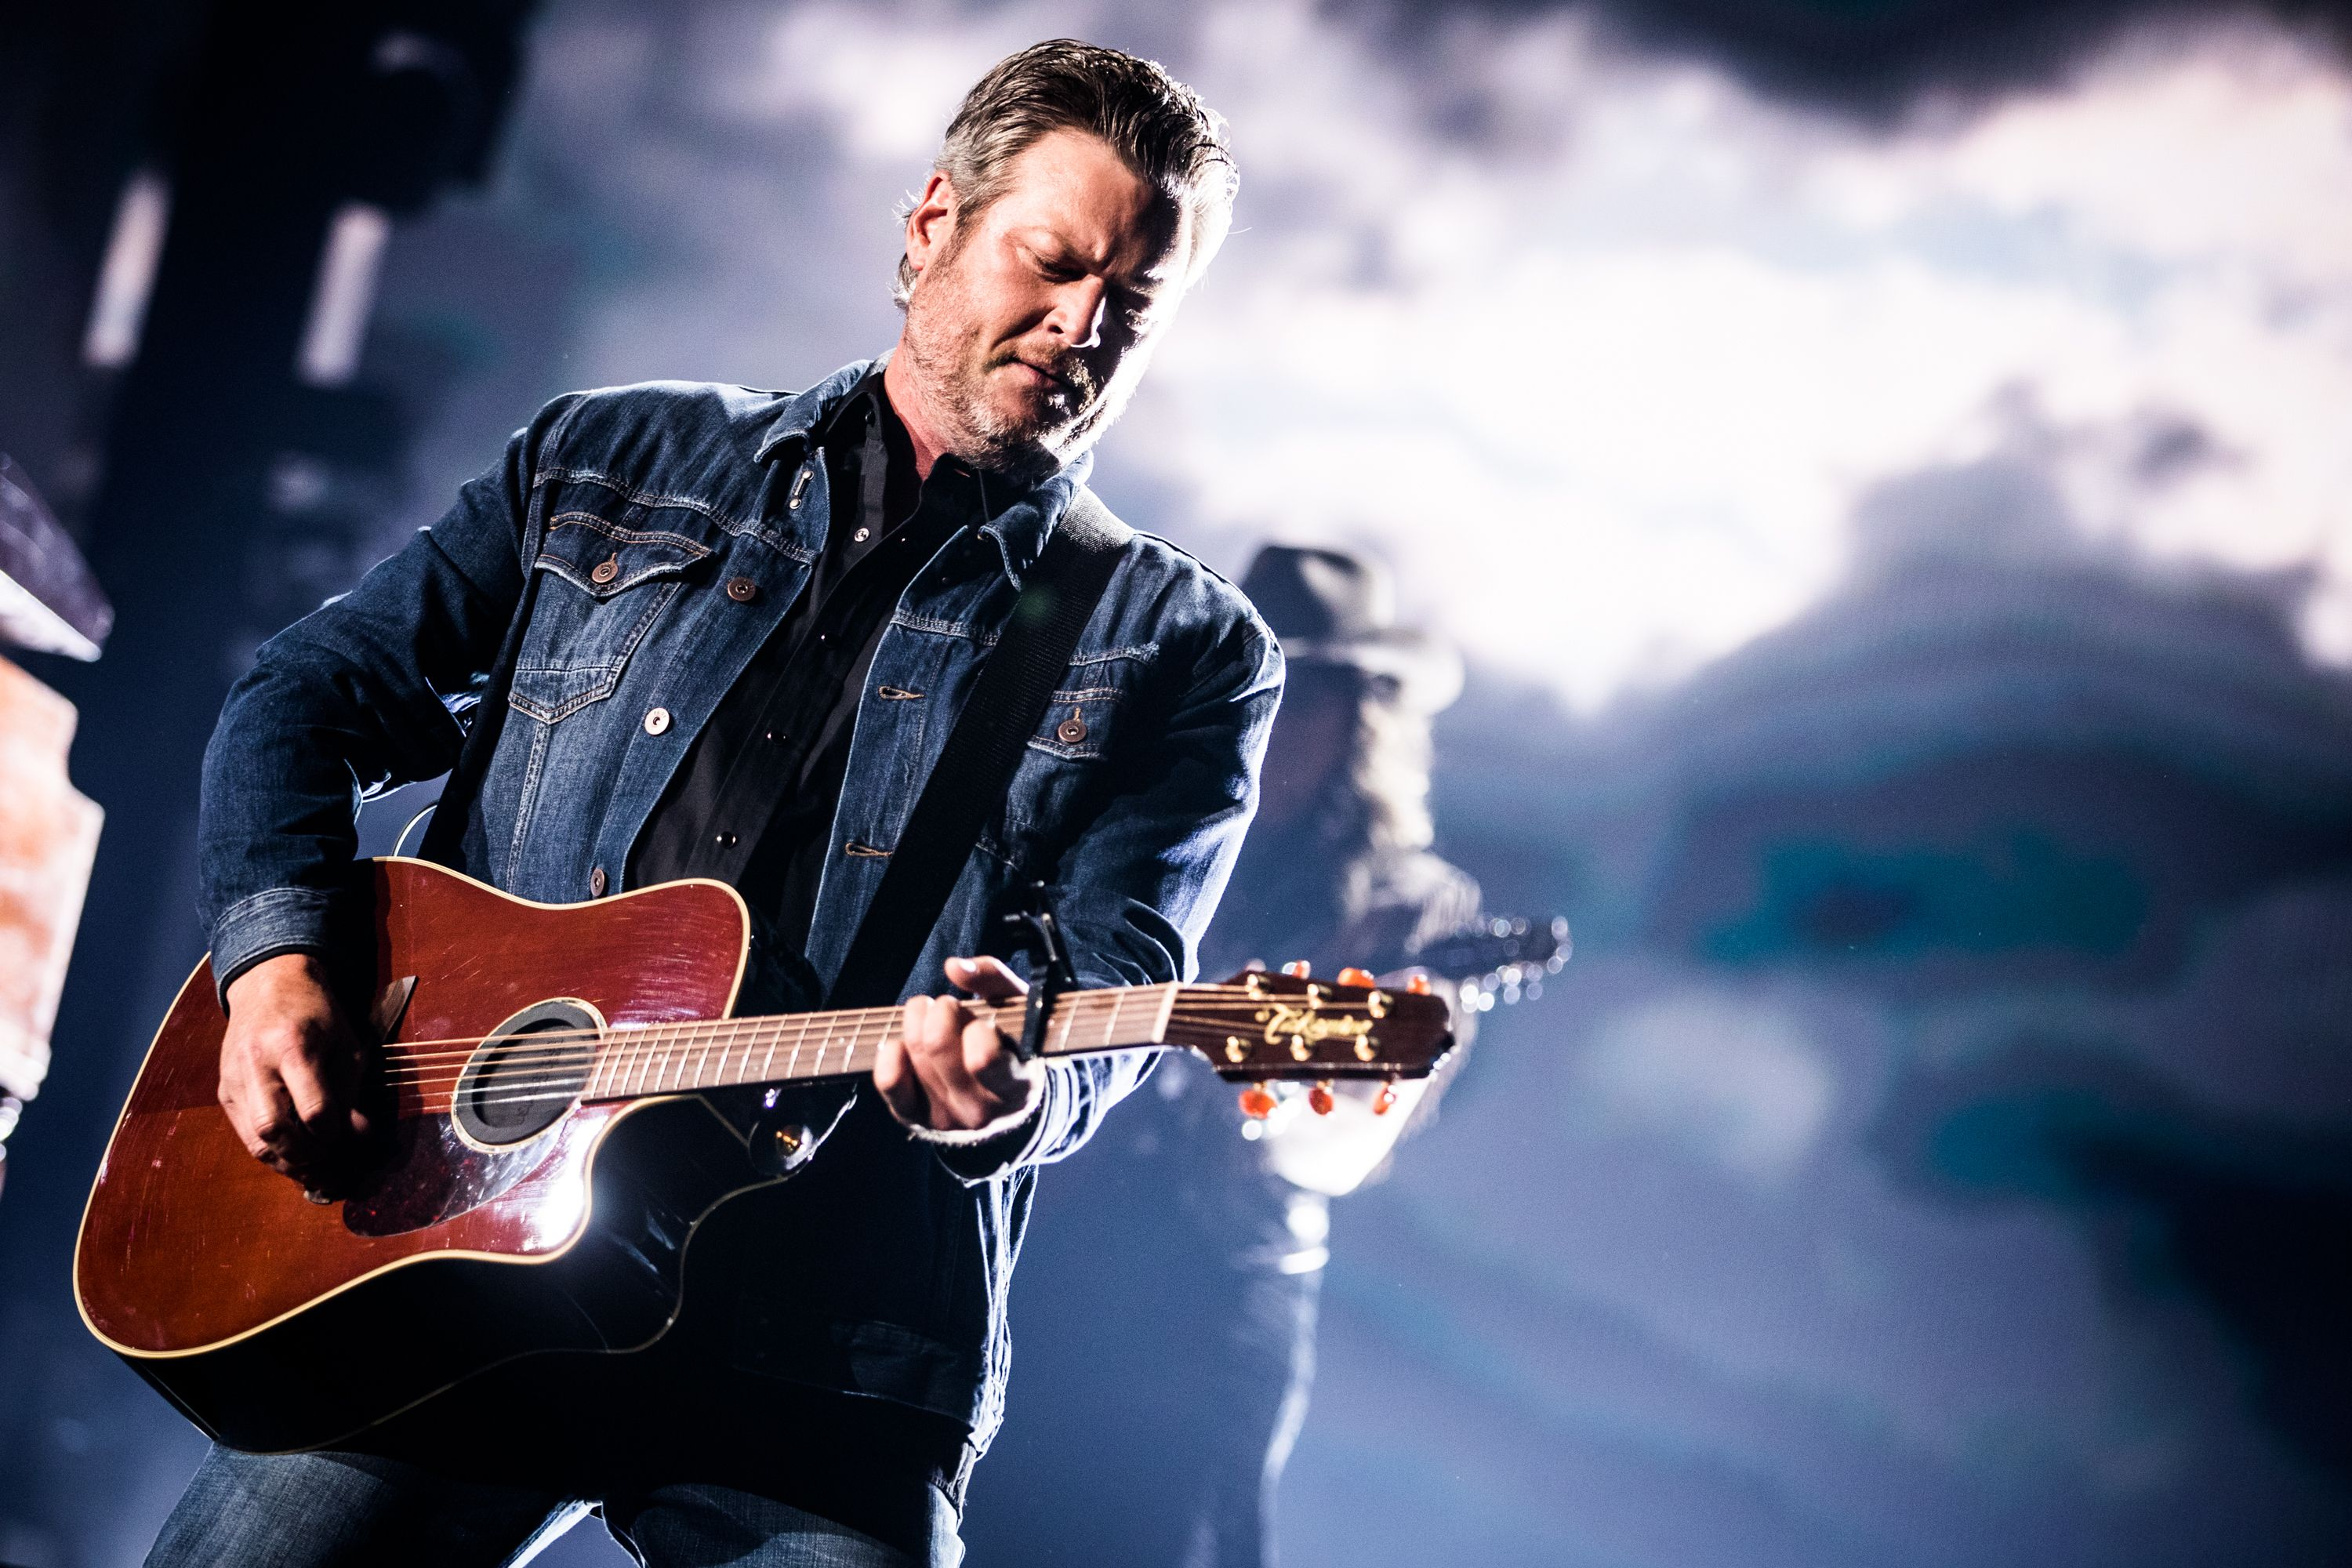 Blake Shelton Reveals What He Would Be Doing if He Didn't Find Country Music